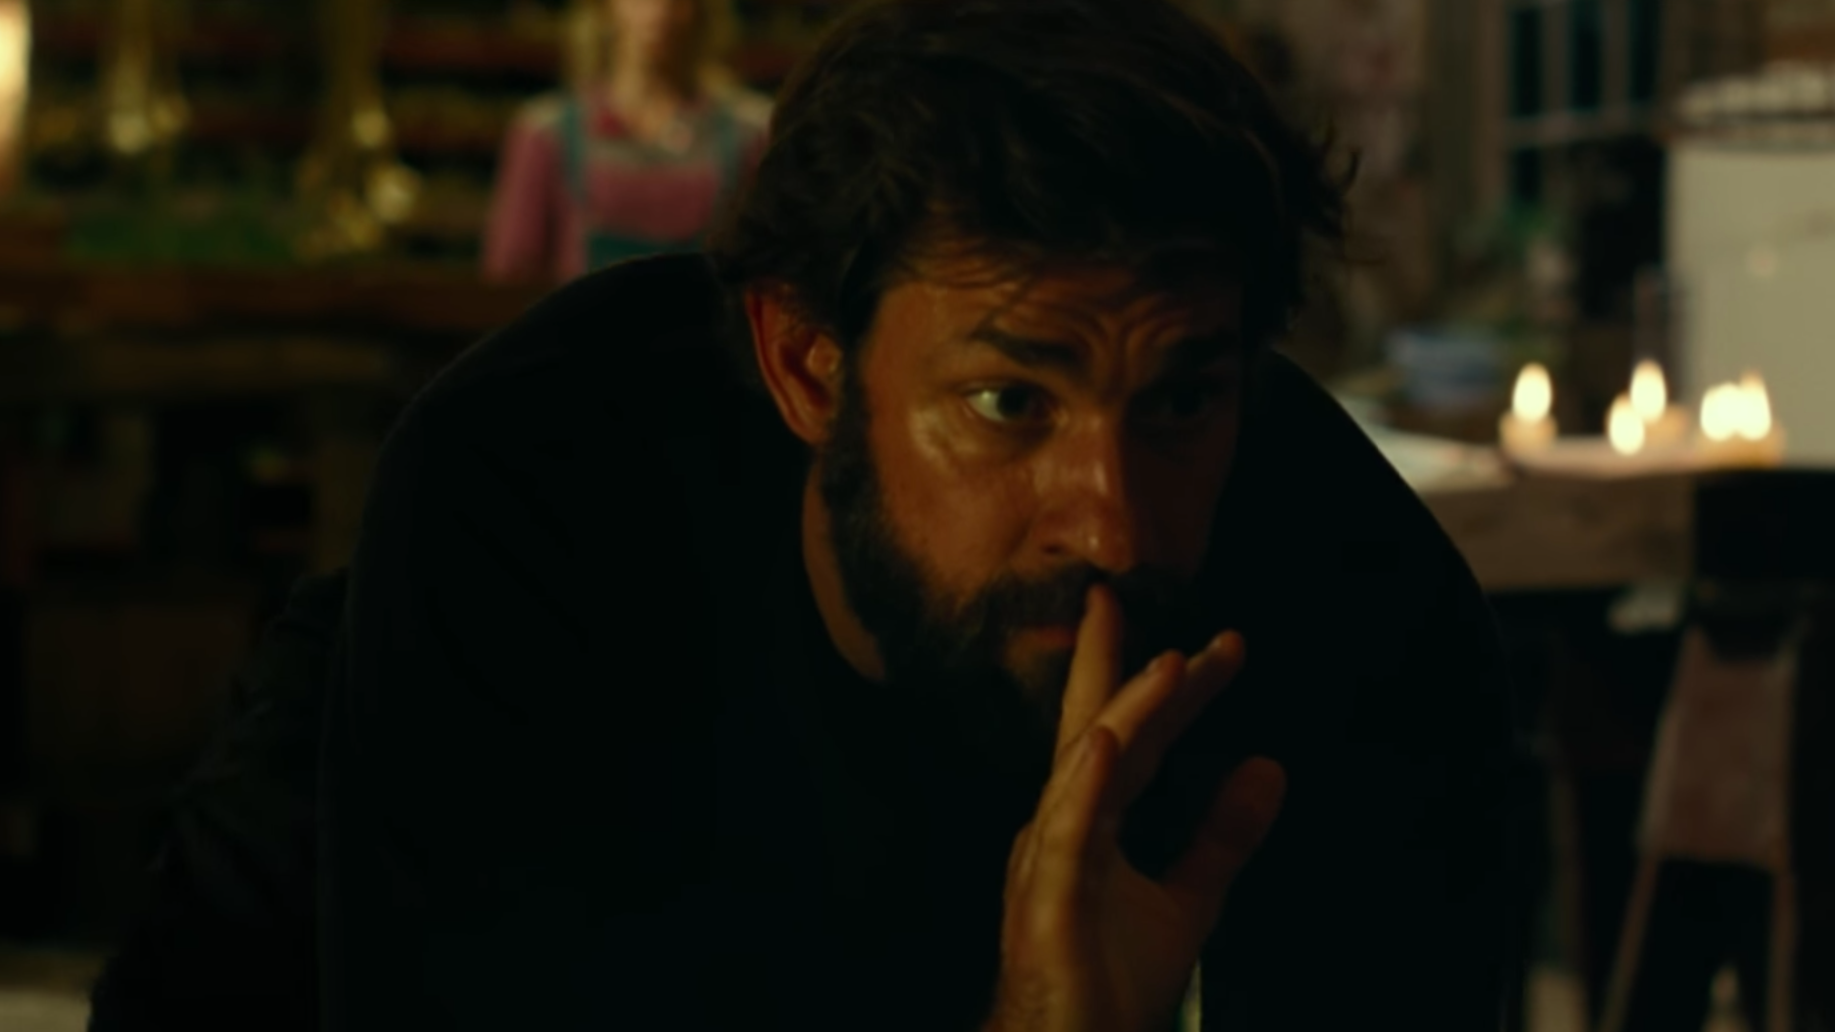 JohnKrasinski & Emily Blunt Star in Horror Film A QUIET PLACE